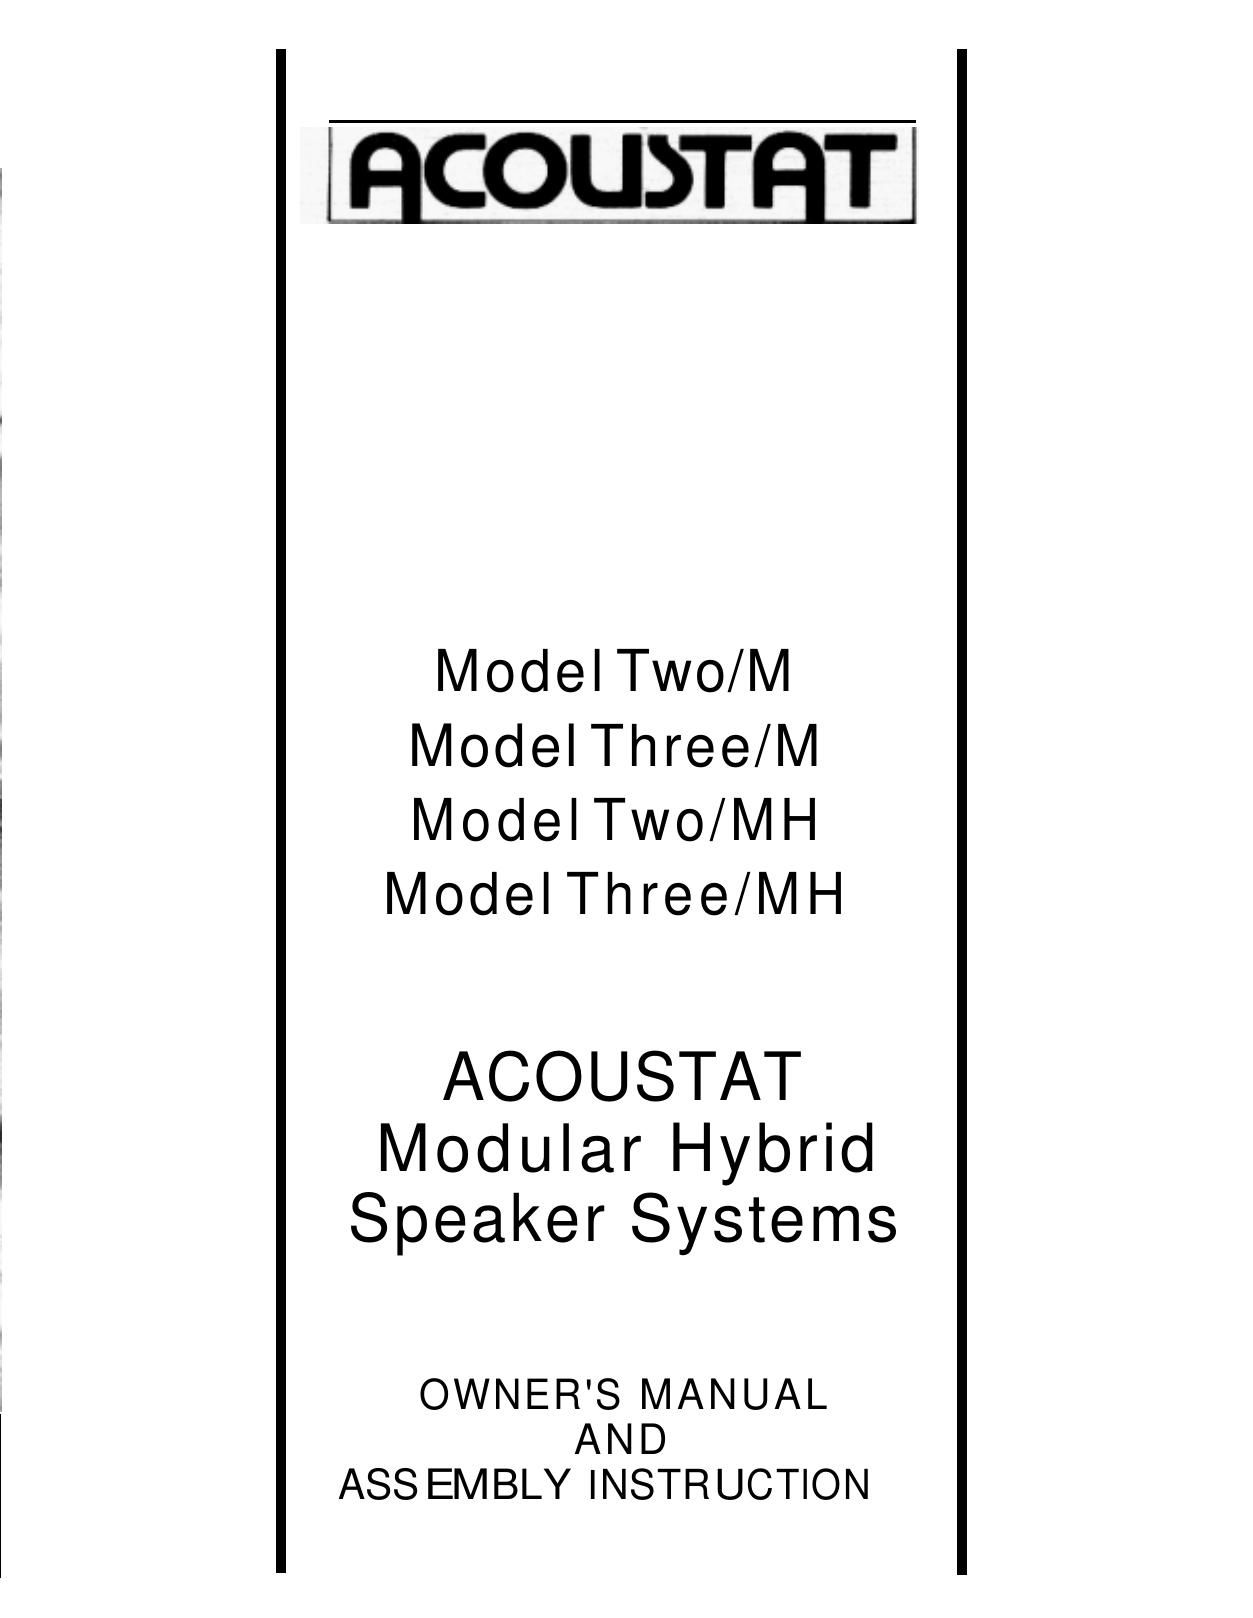 Acoustat Model 2 M Owners Manual